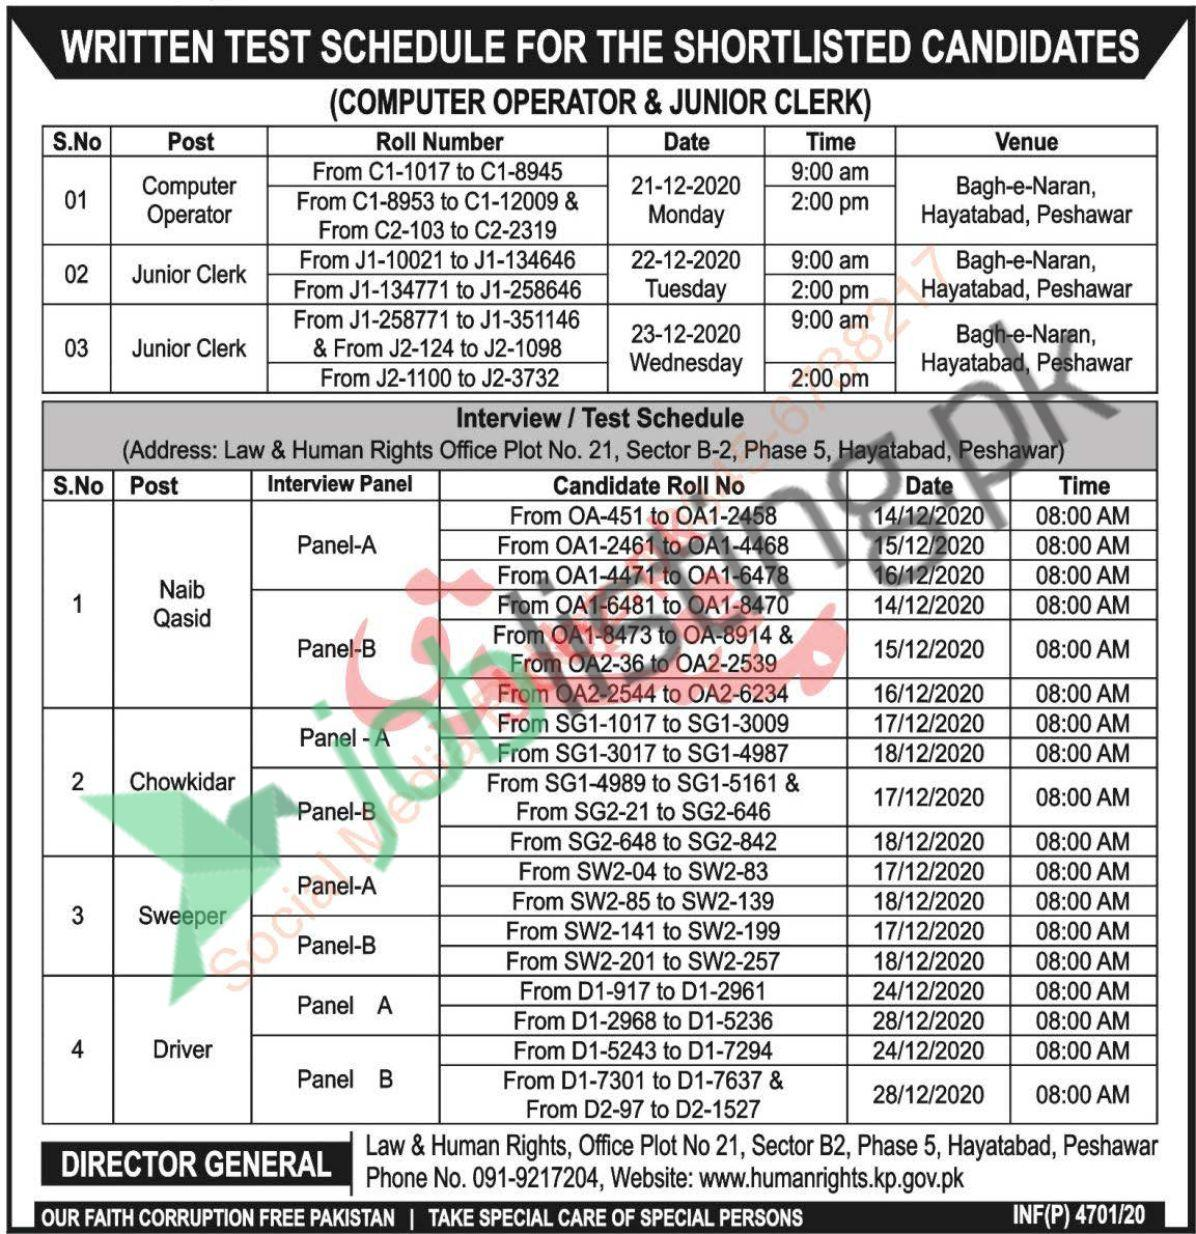 Schedule for Interview / Test of shortlist candidates